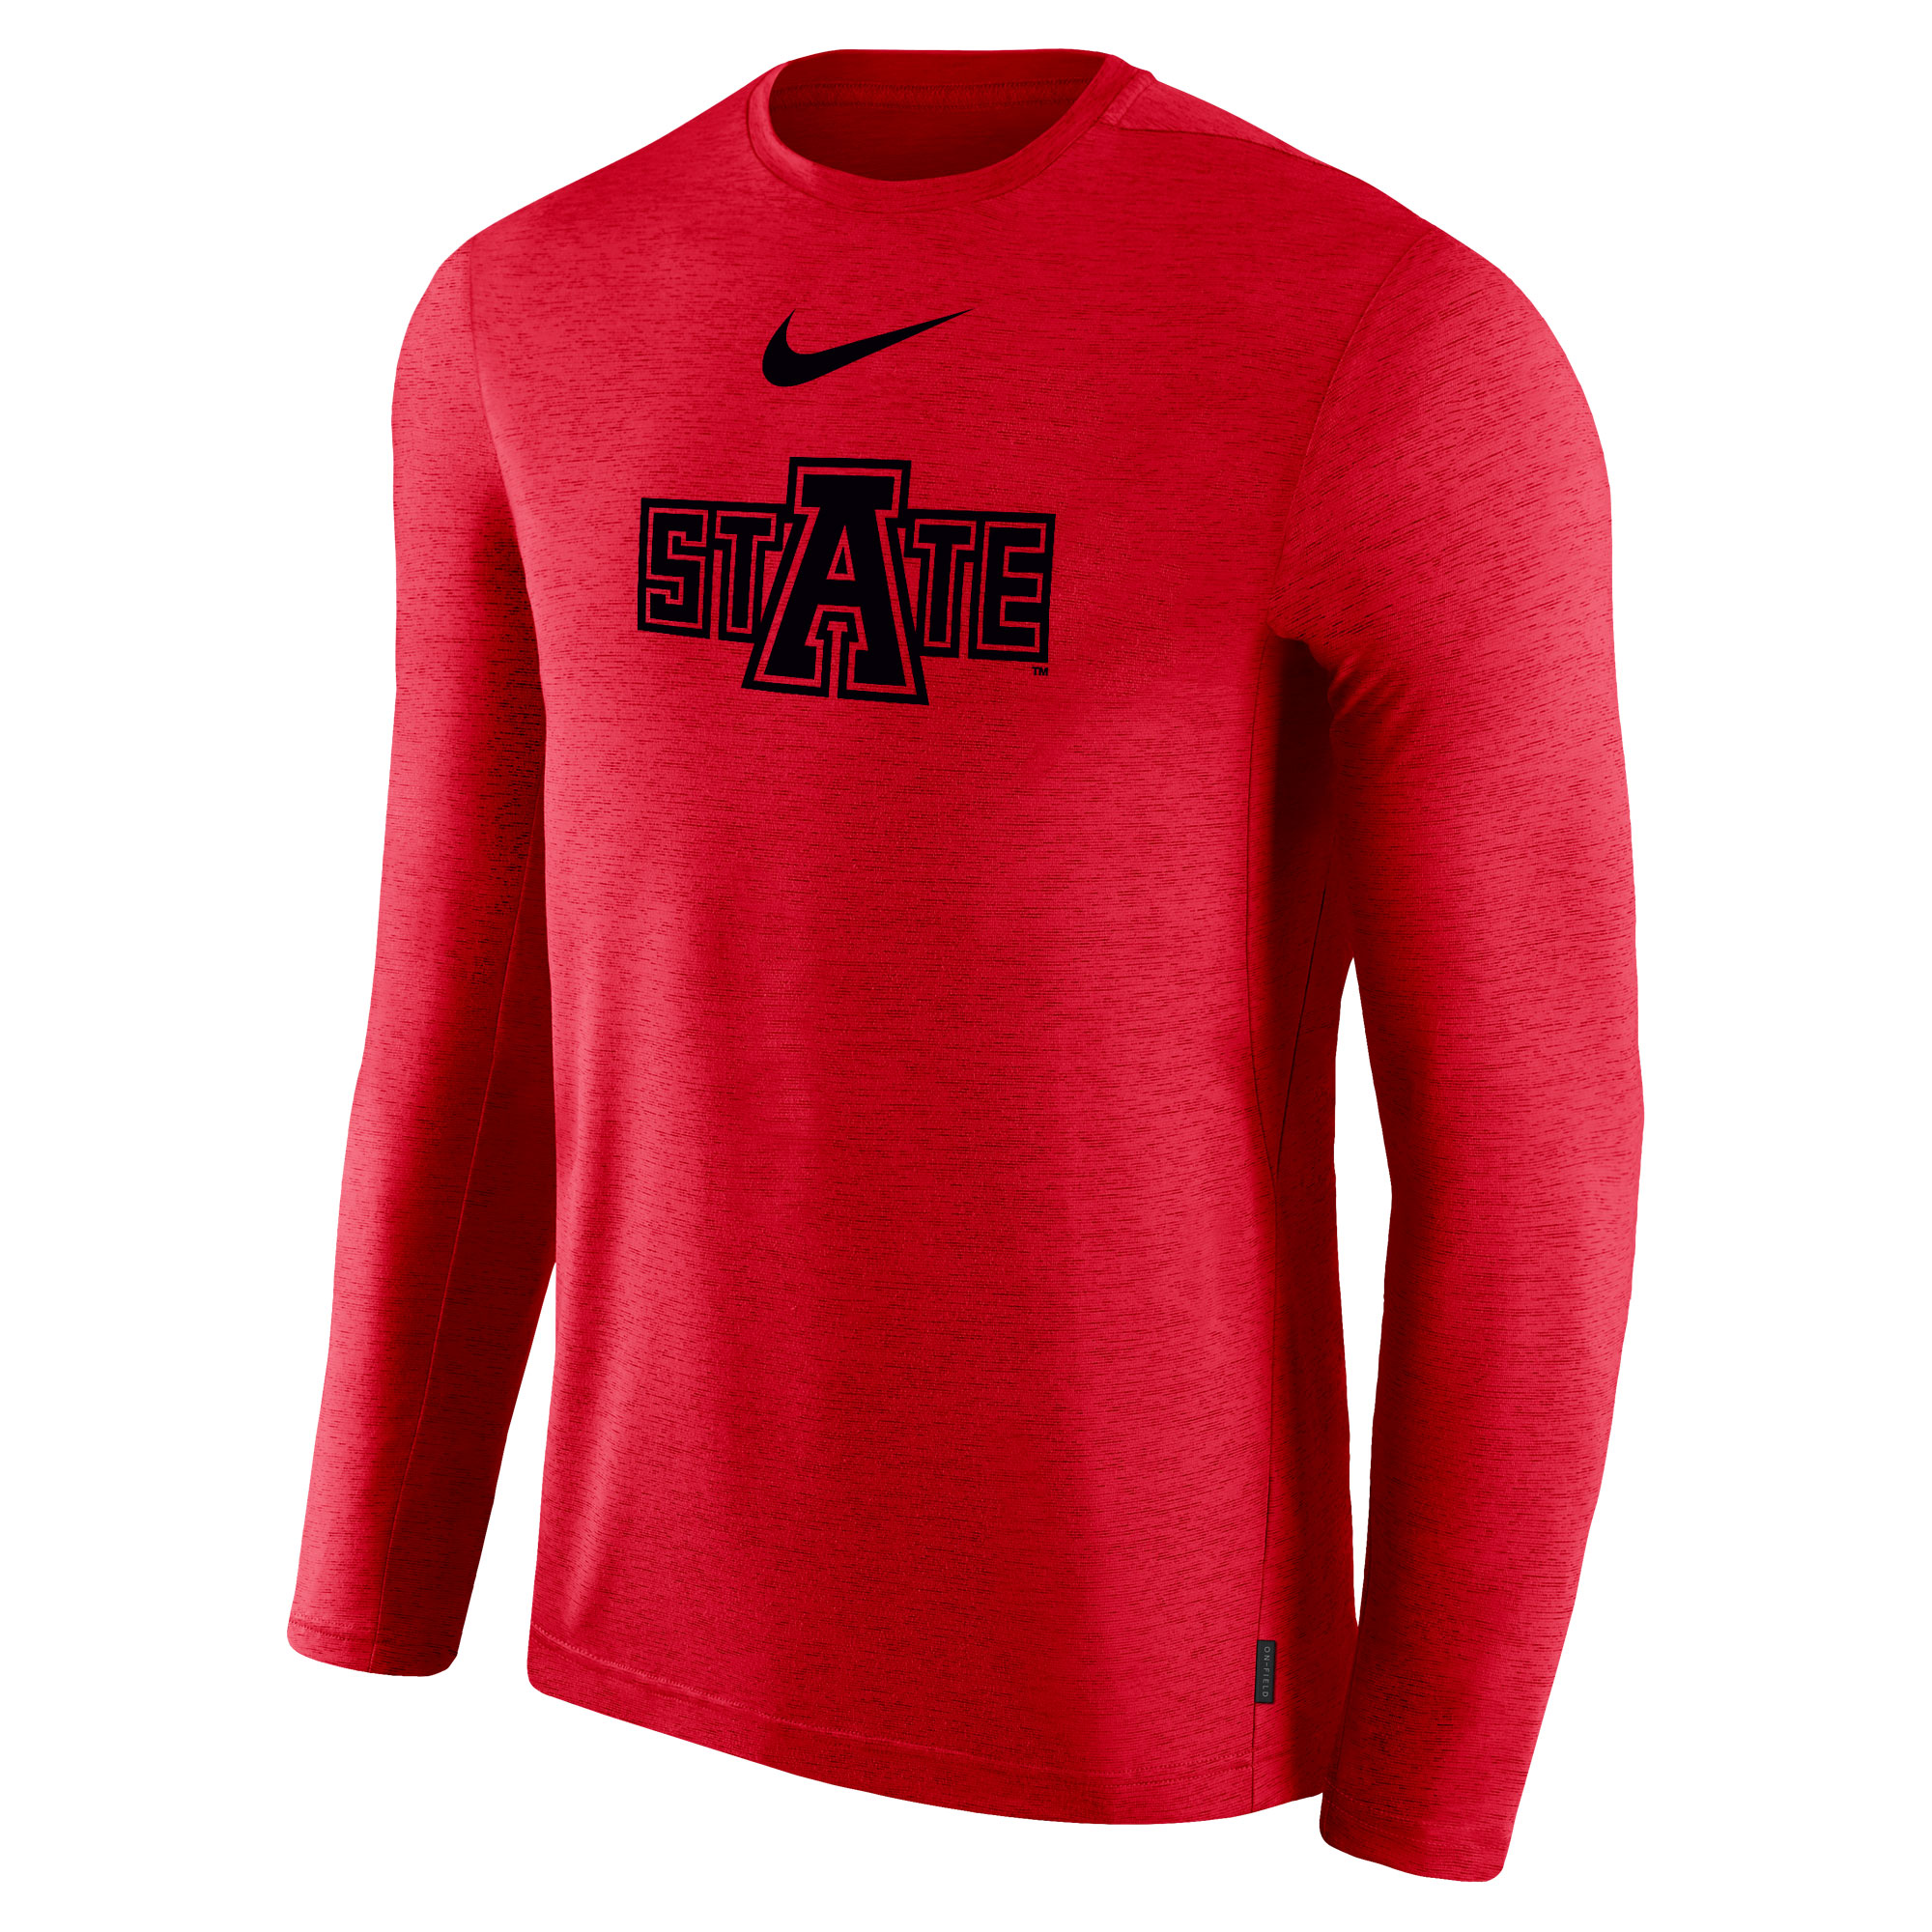 Arkansas State Coach LS Top